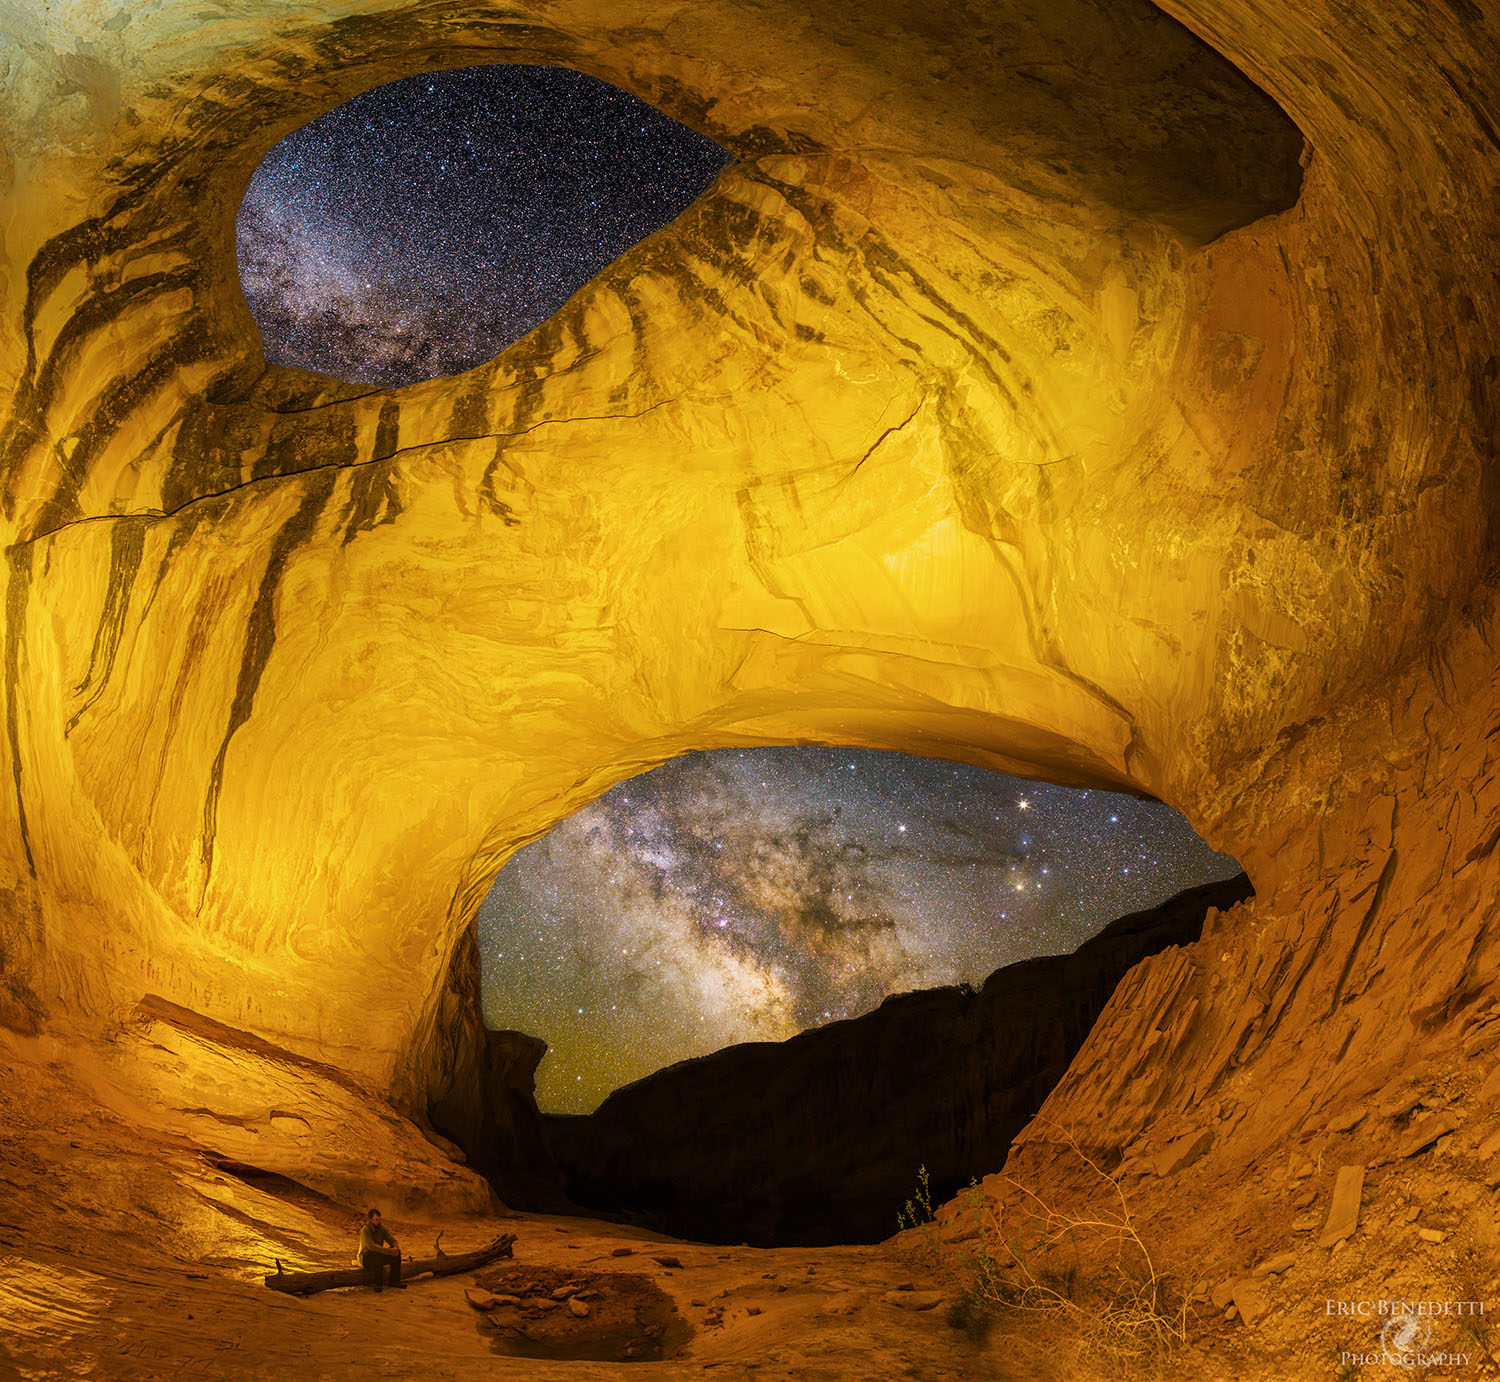 Wild Horse Cave by Eric Benedetti